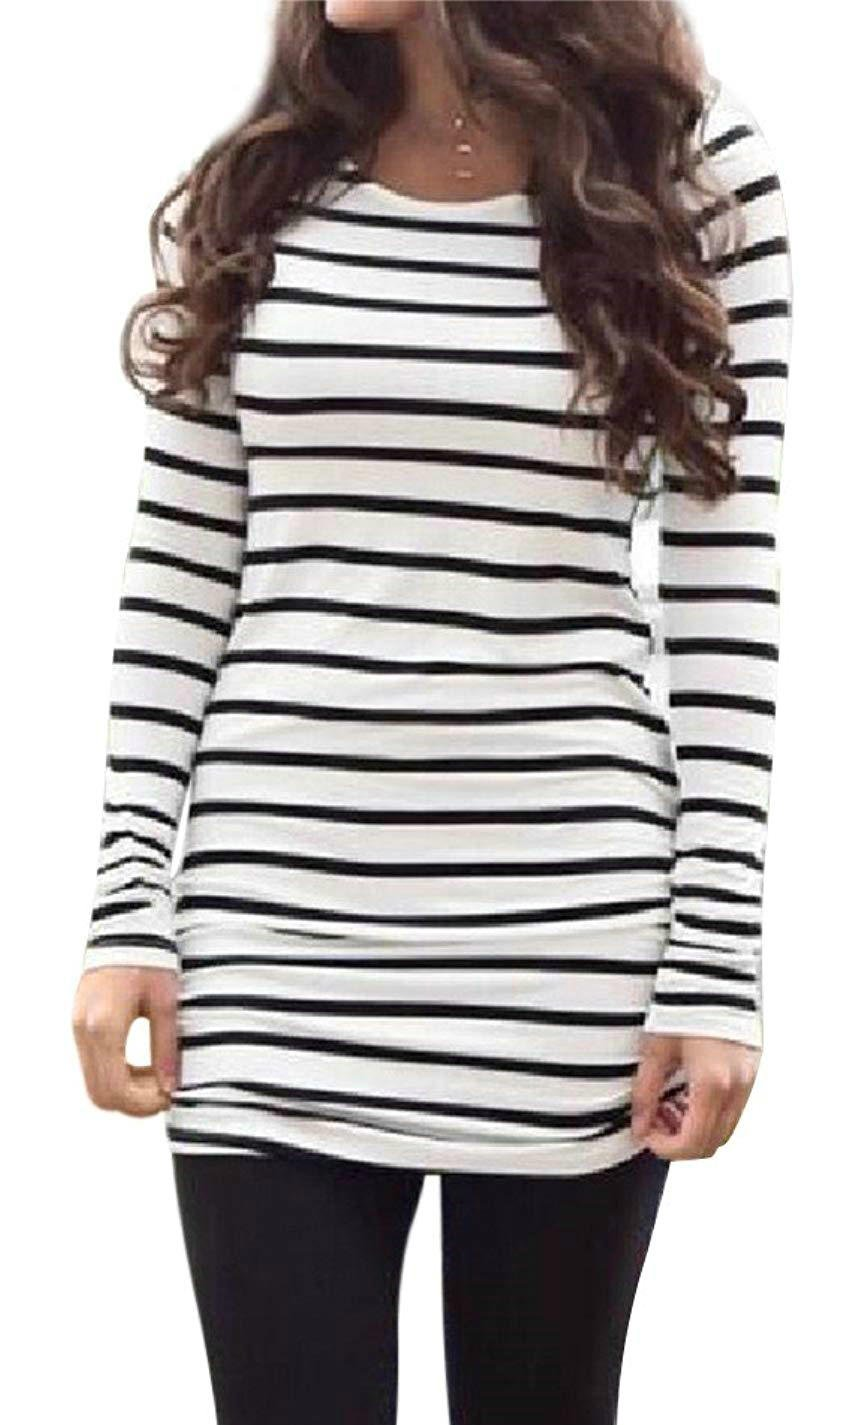 Women's Women's Black and White Striped Shirt Dress Long Sleeves Casual Tee Blouse Tops (M, White2)